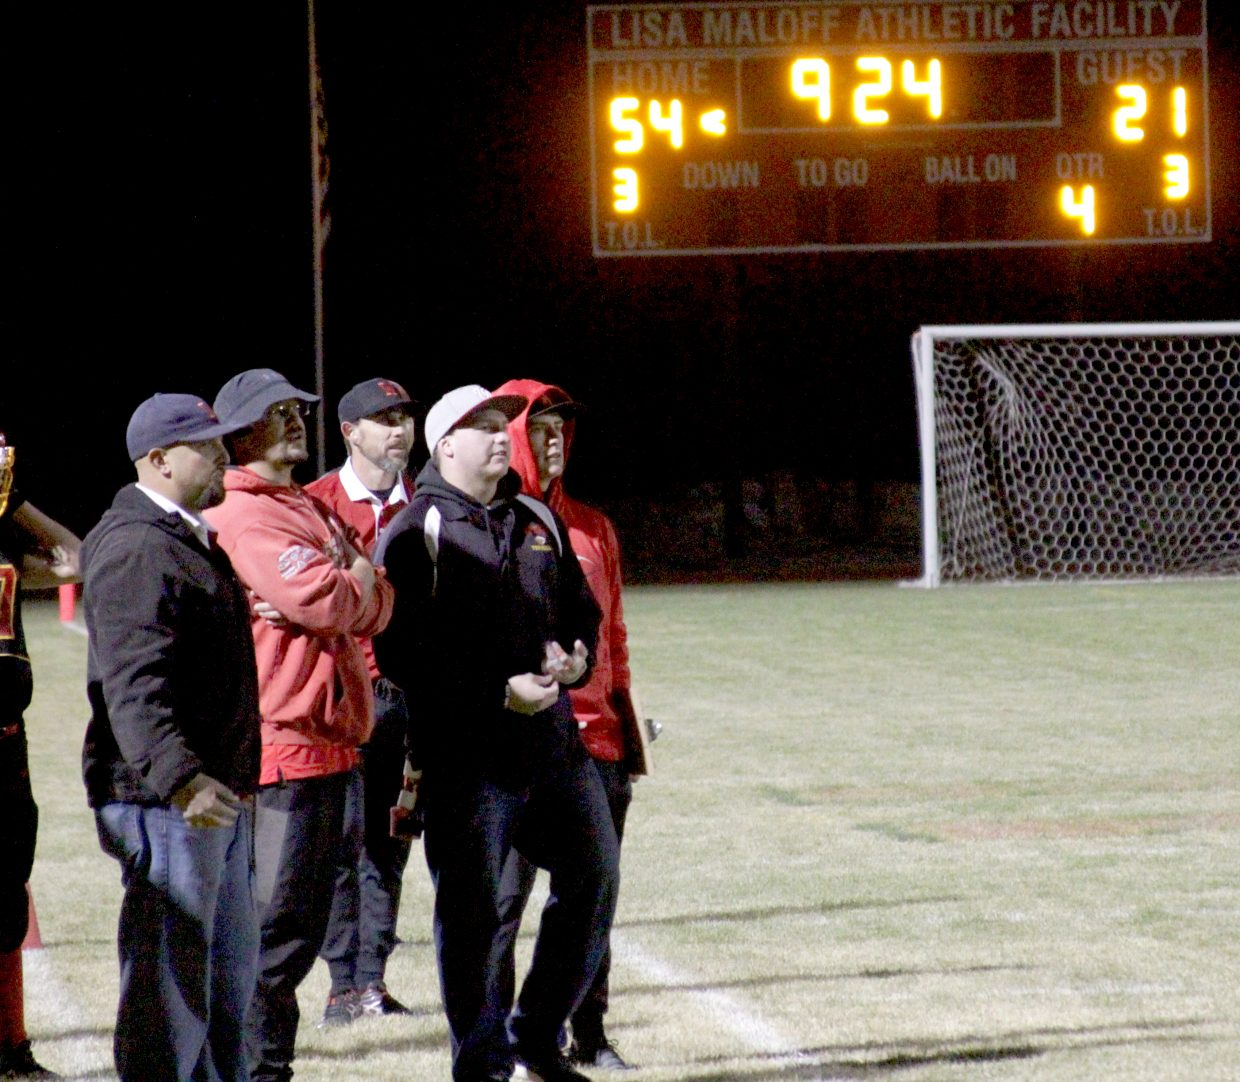 The Whittell coaching staff watches a play in the fourth quarter with the Warriors up big.